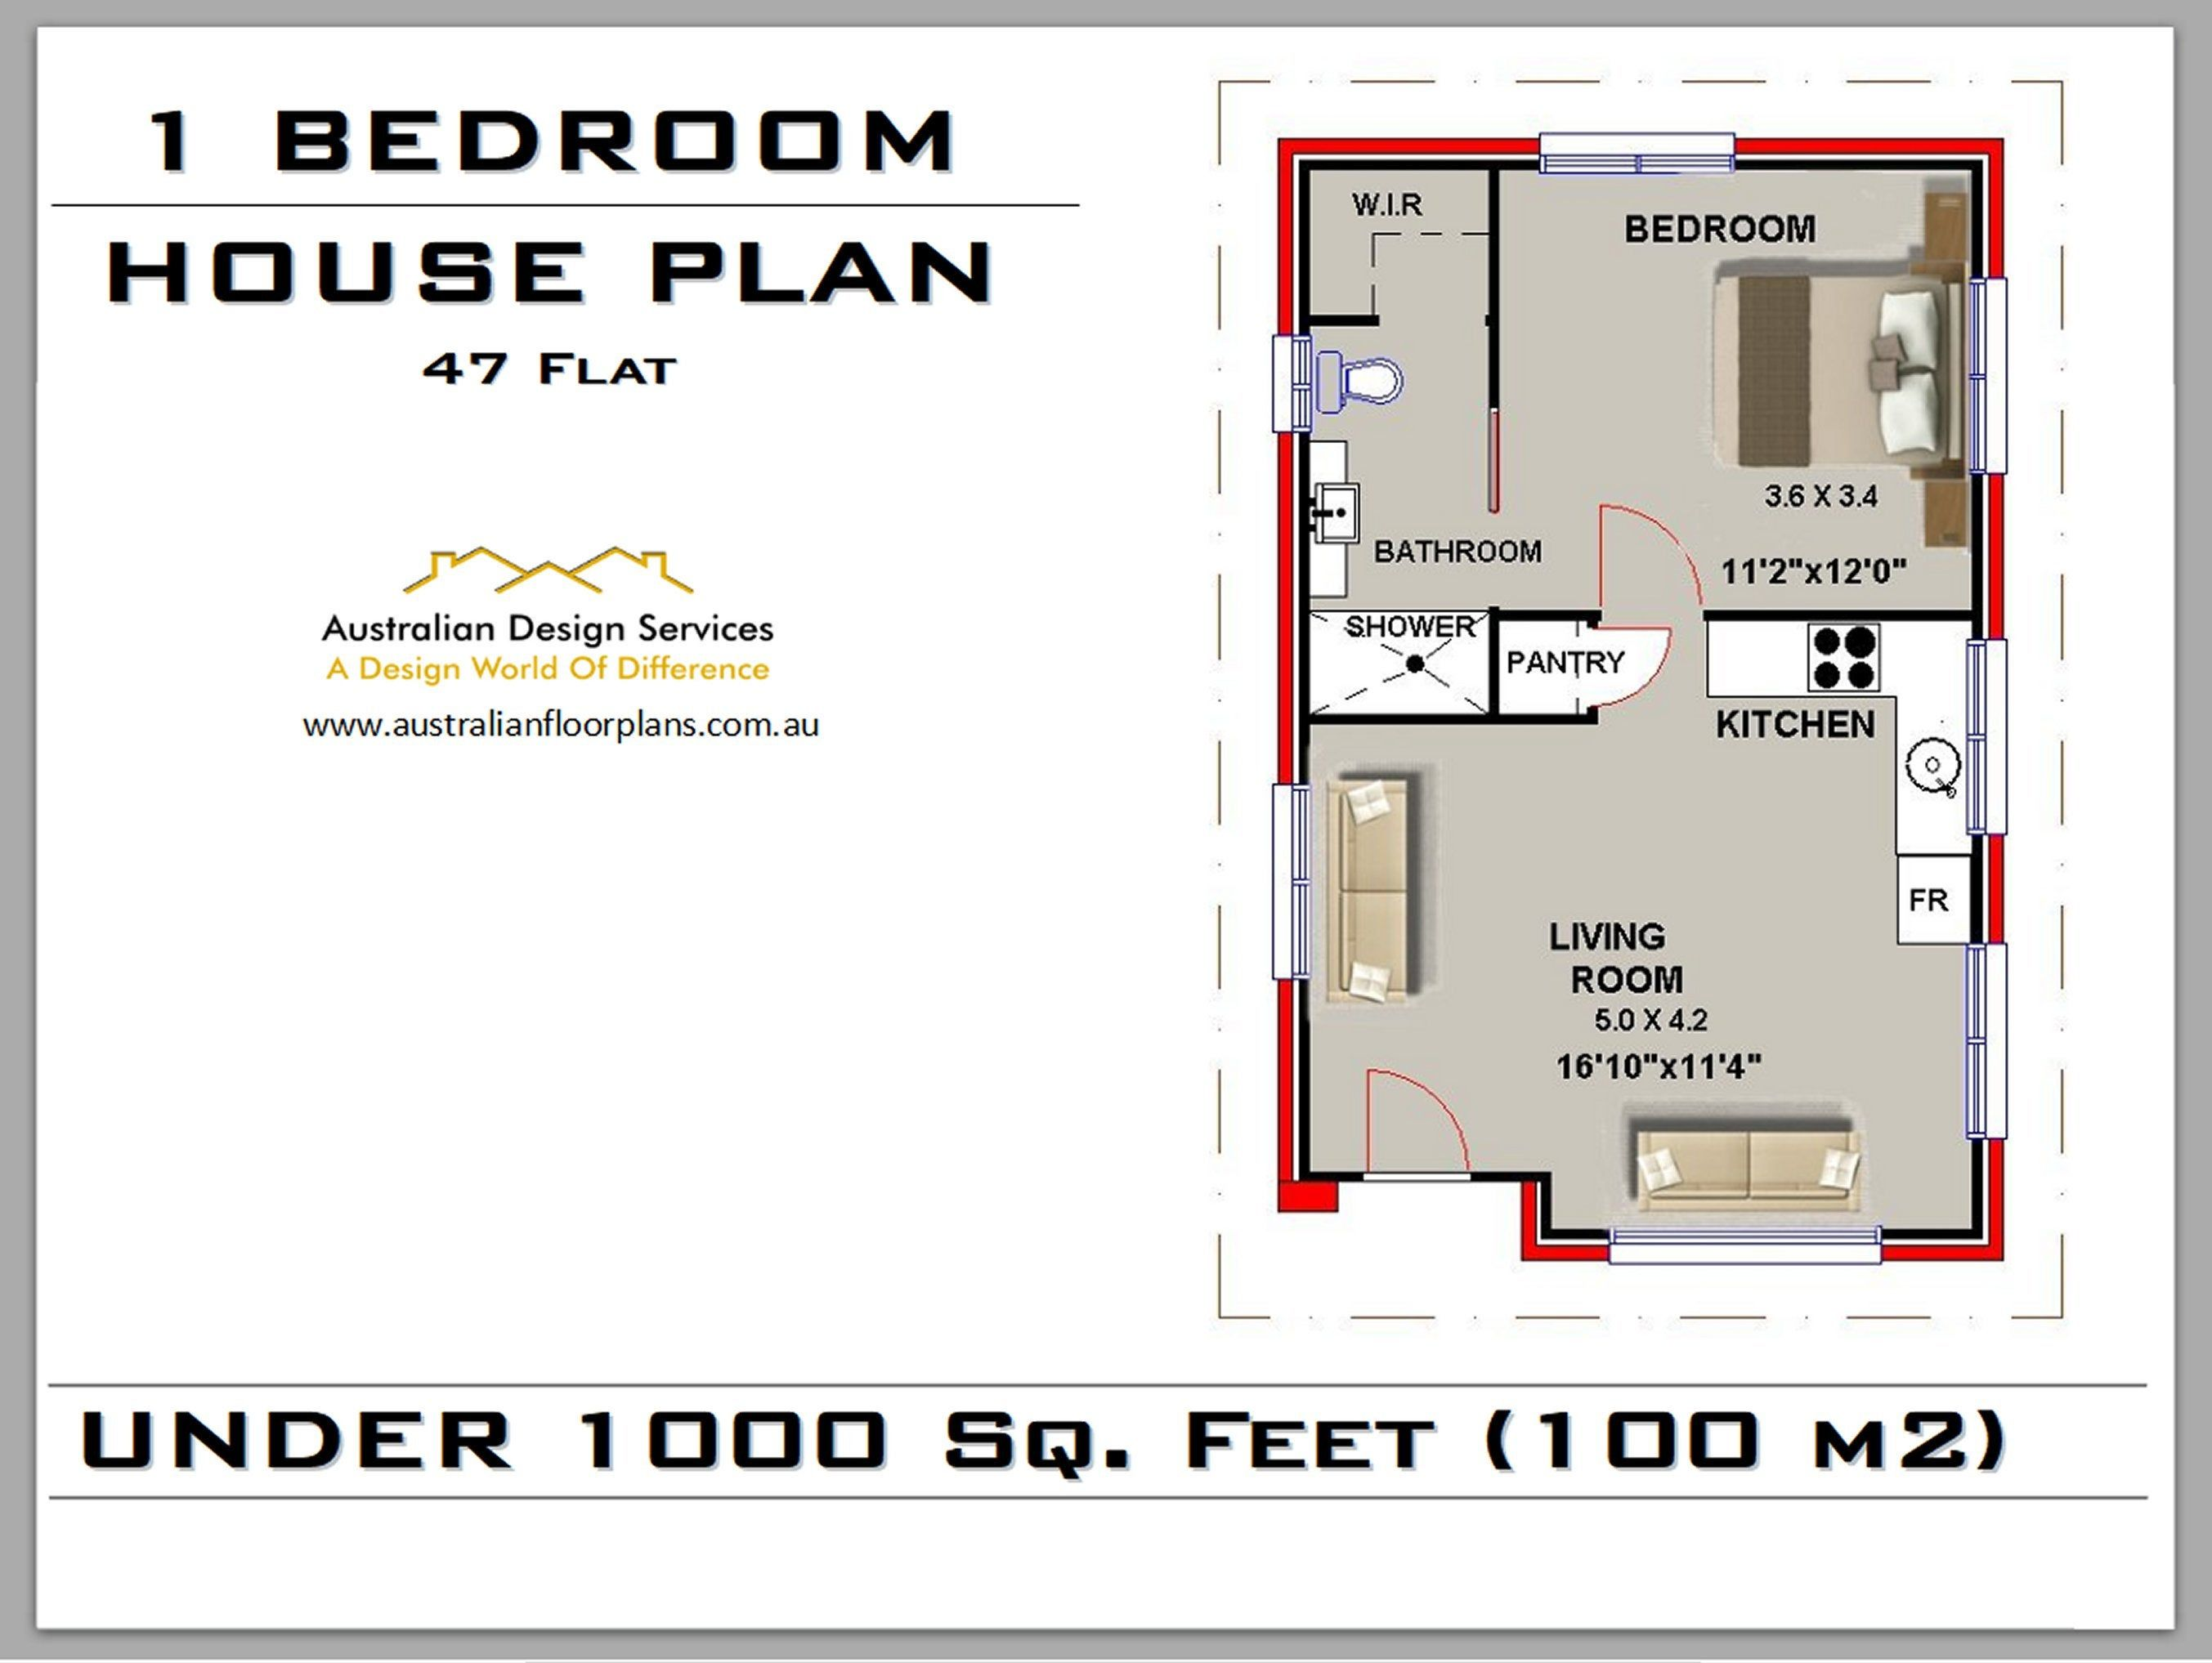 47 Flat 509 Sq Feet Or 47 35 M2 1 Bedroom House Plan 1 Etsy 1 Bedroom House Plans House Plans For Sale House Plans